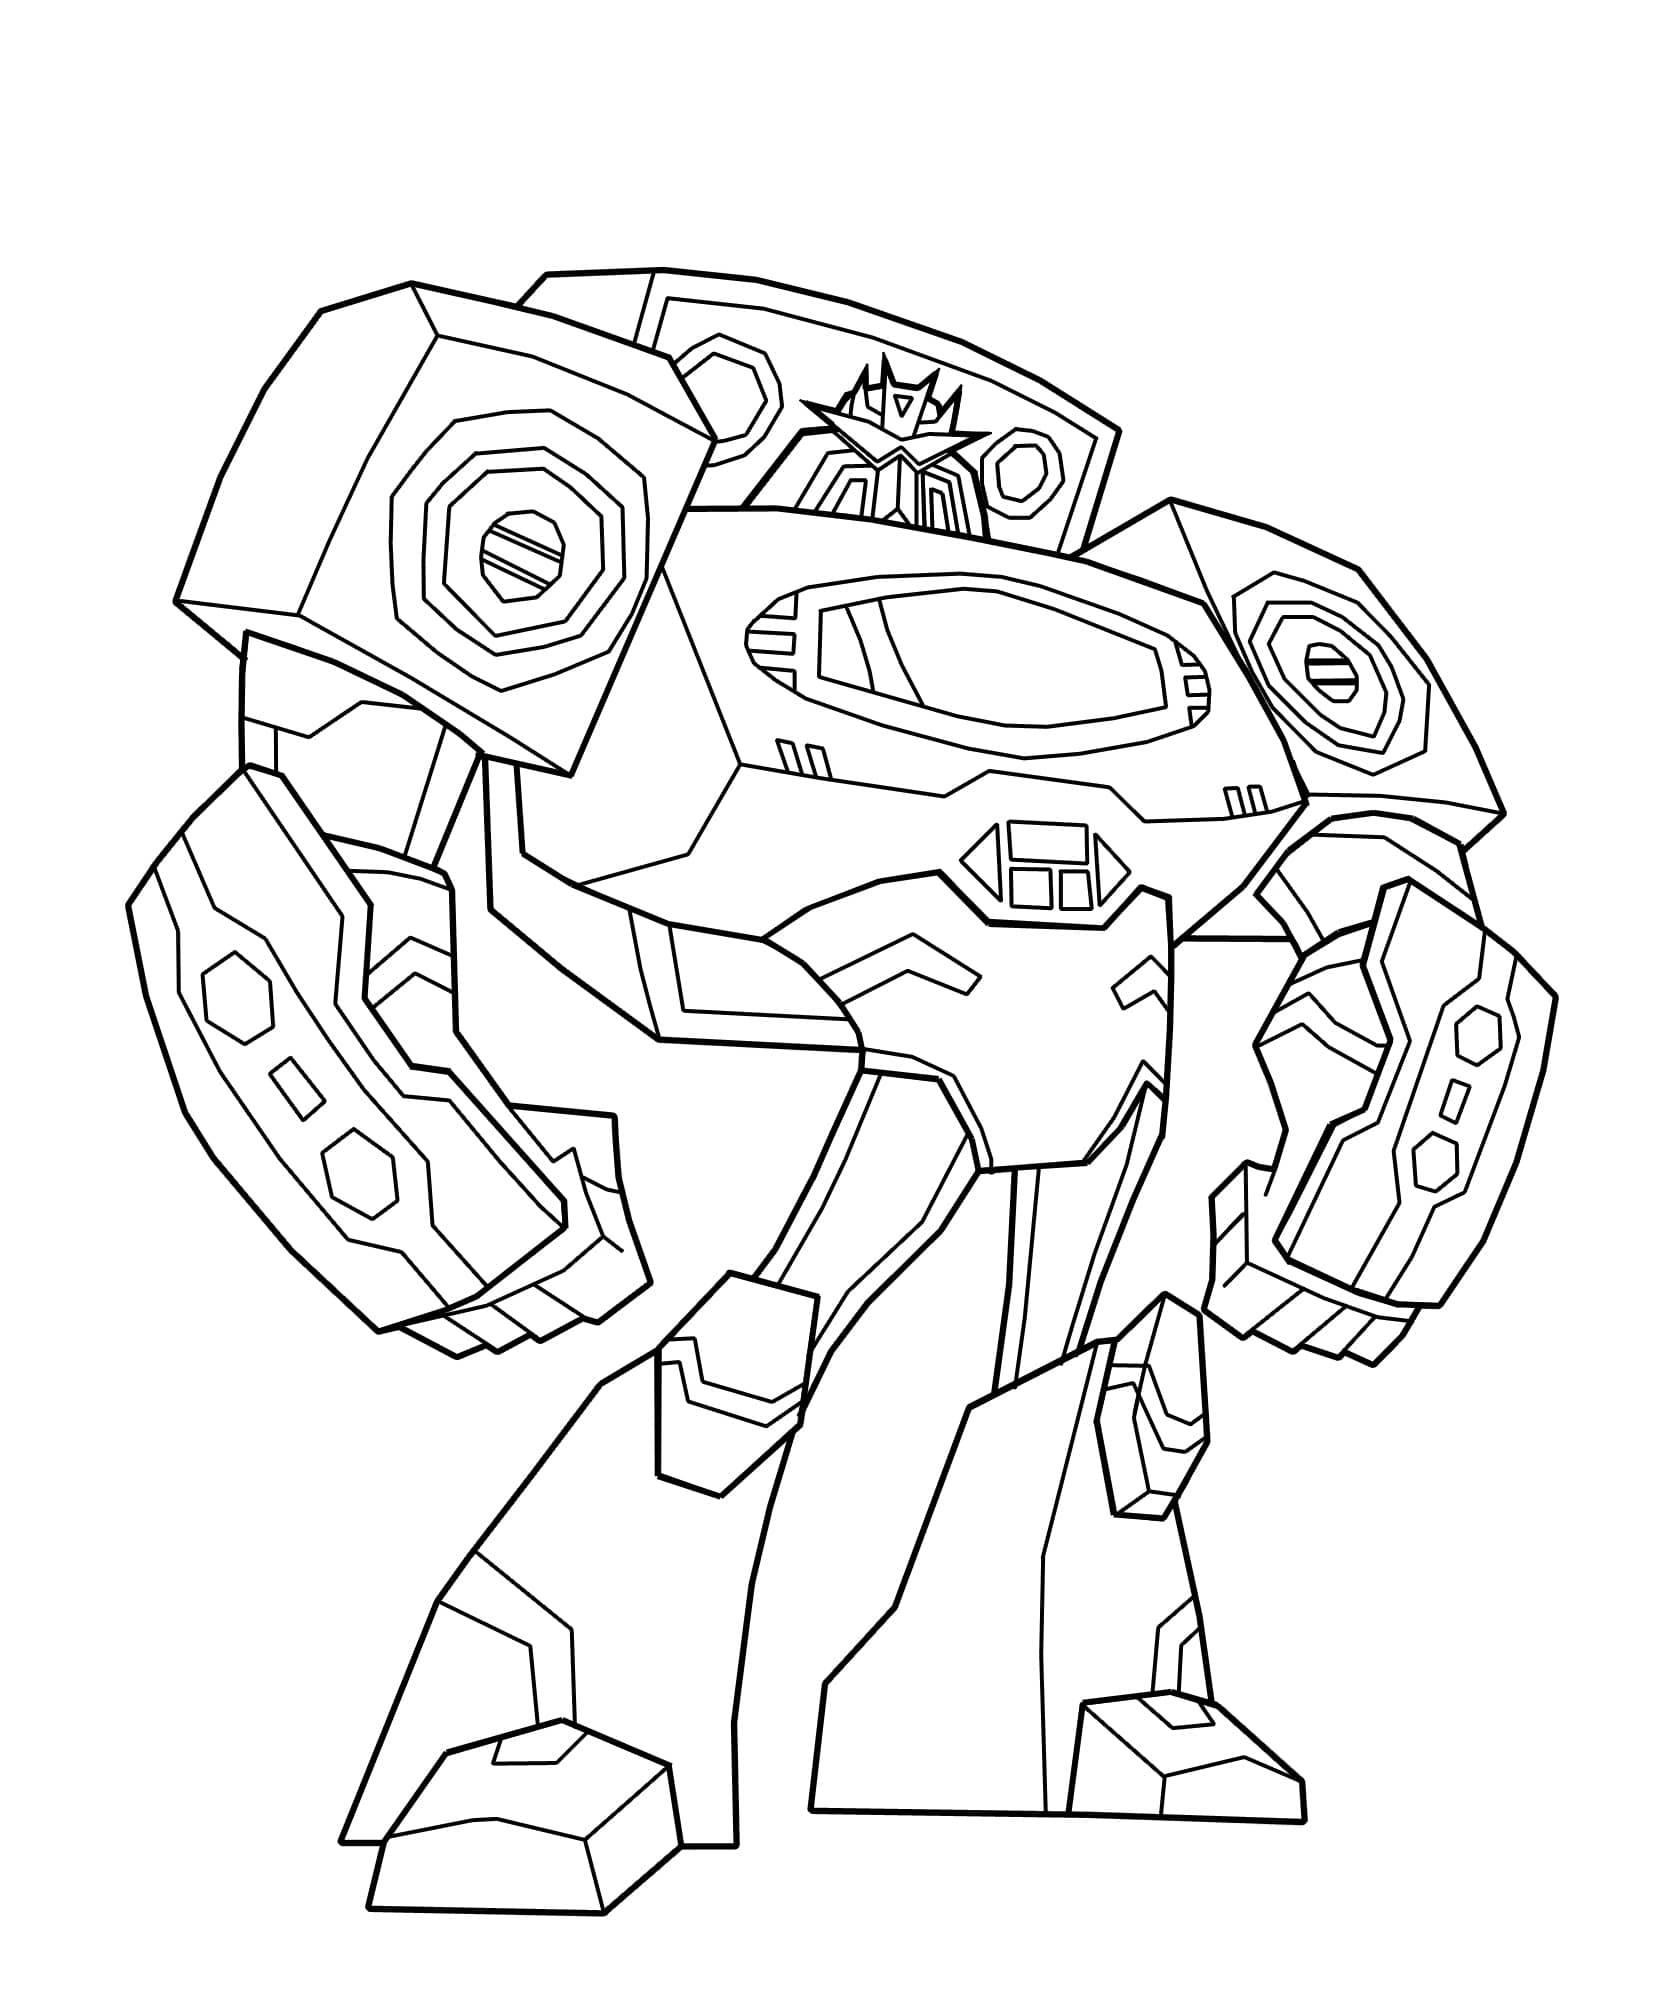 transformers barricade coloring pages break out the crayolas barricade pages coloring transformers